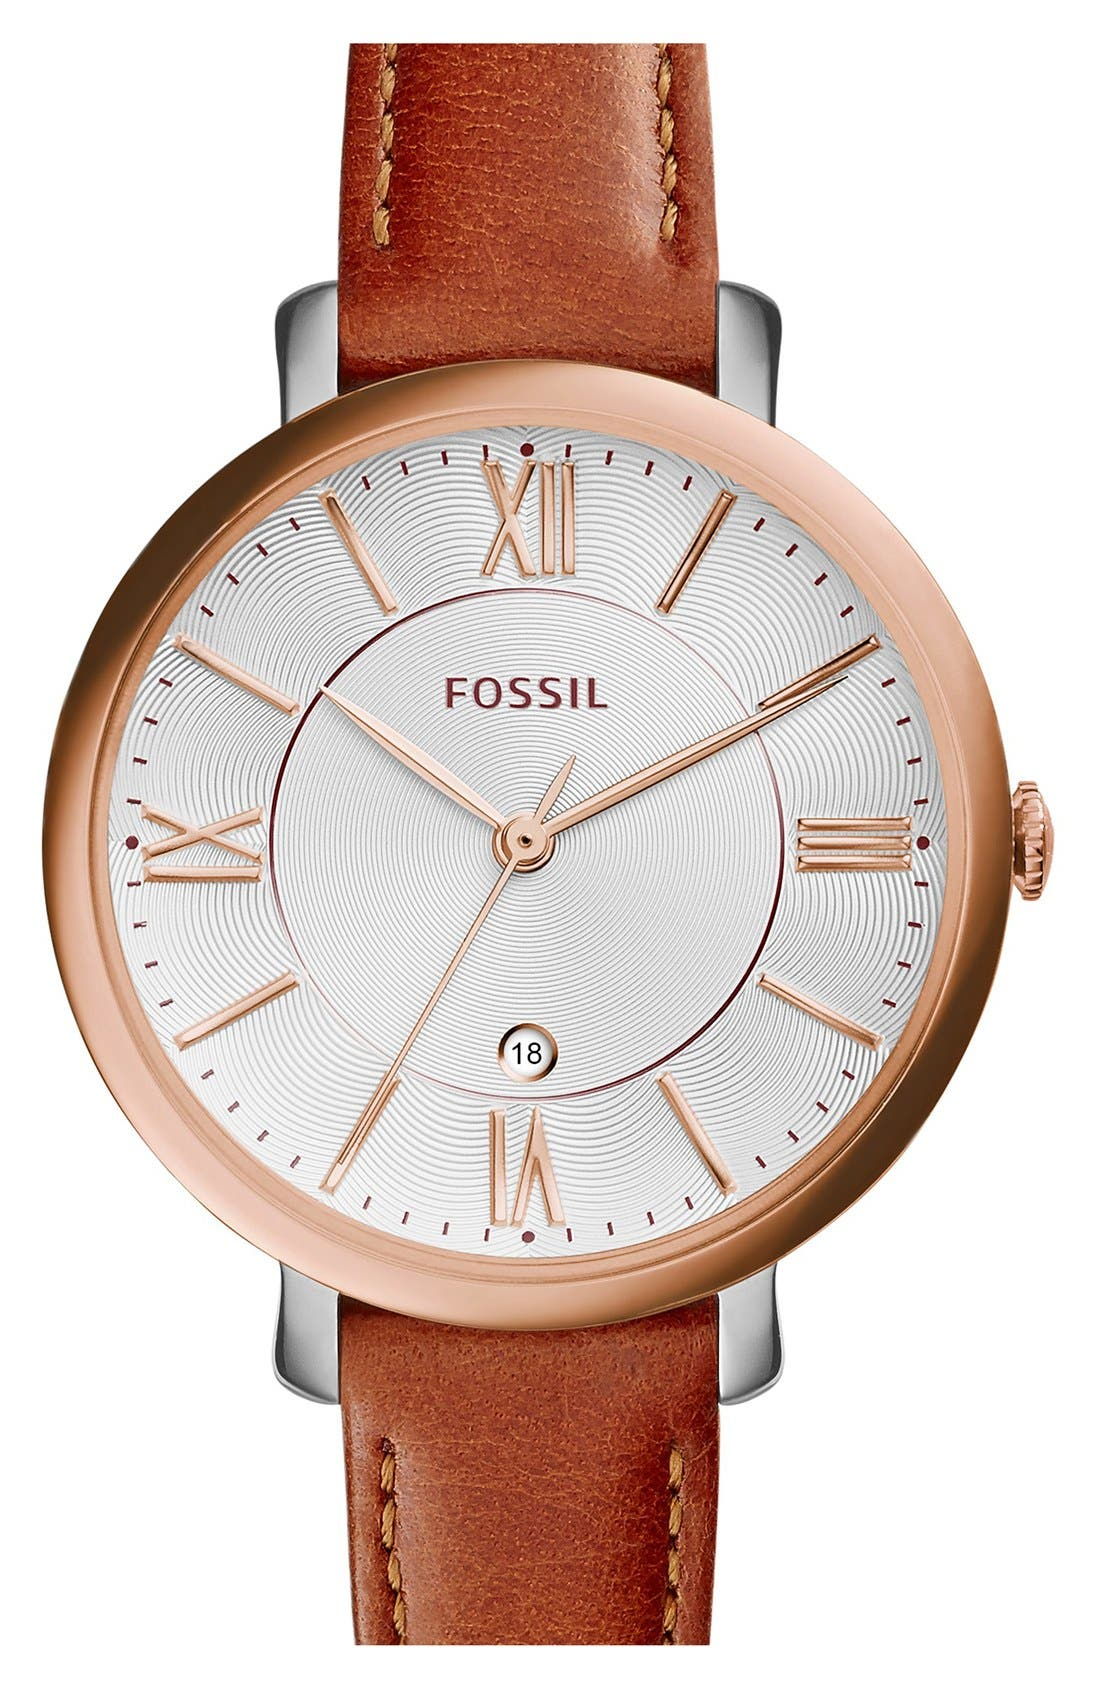 FOSSIL 'Jacqueline' Round Leather Strap Watch, 36mm, Main, color, BROWN/ ROSE GOLD